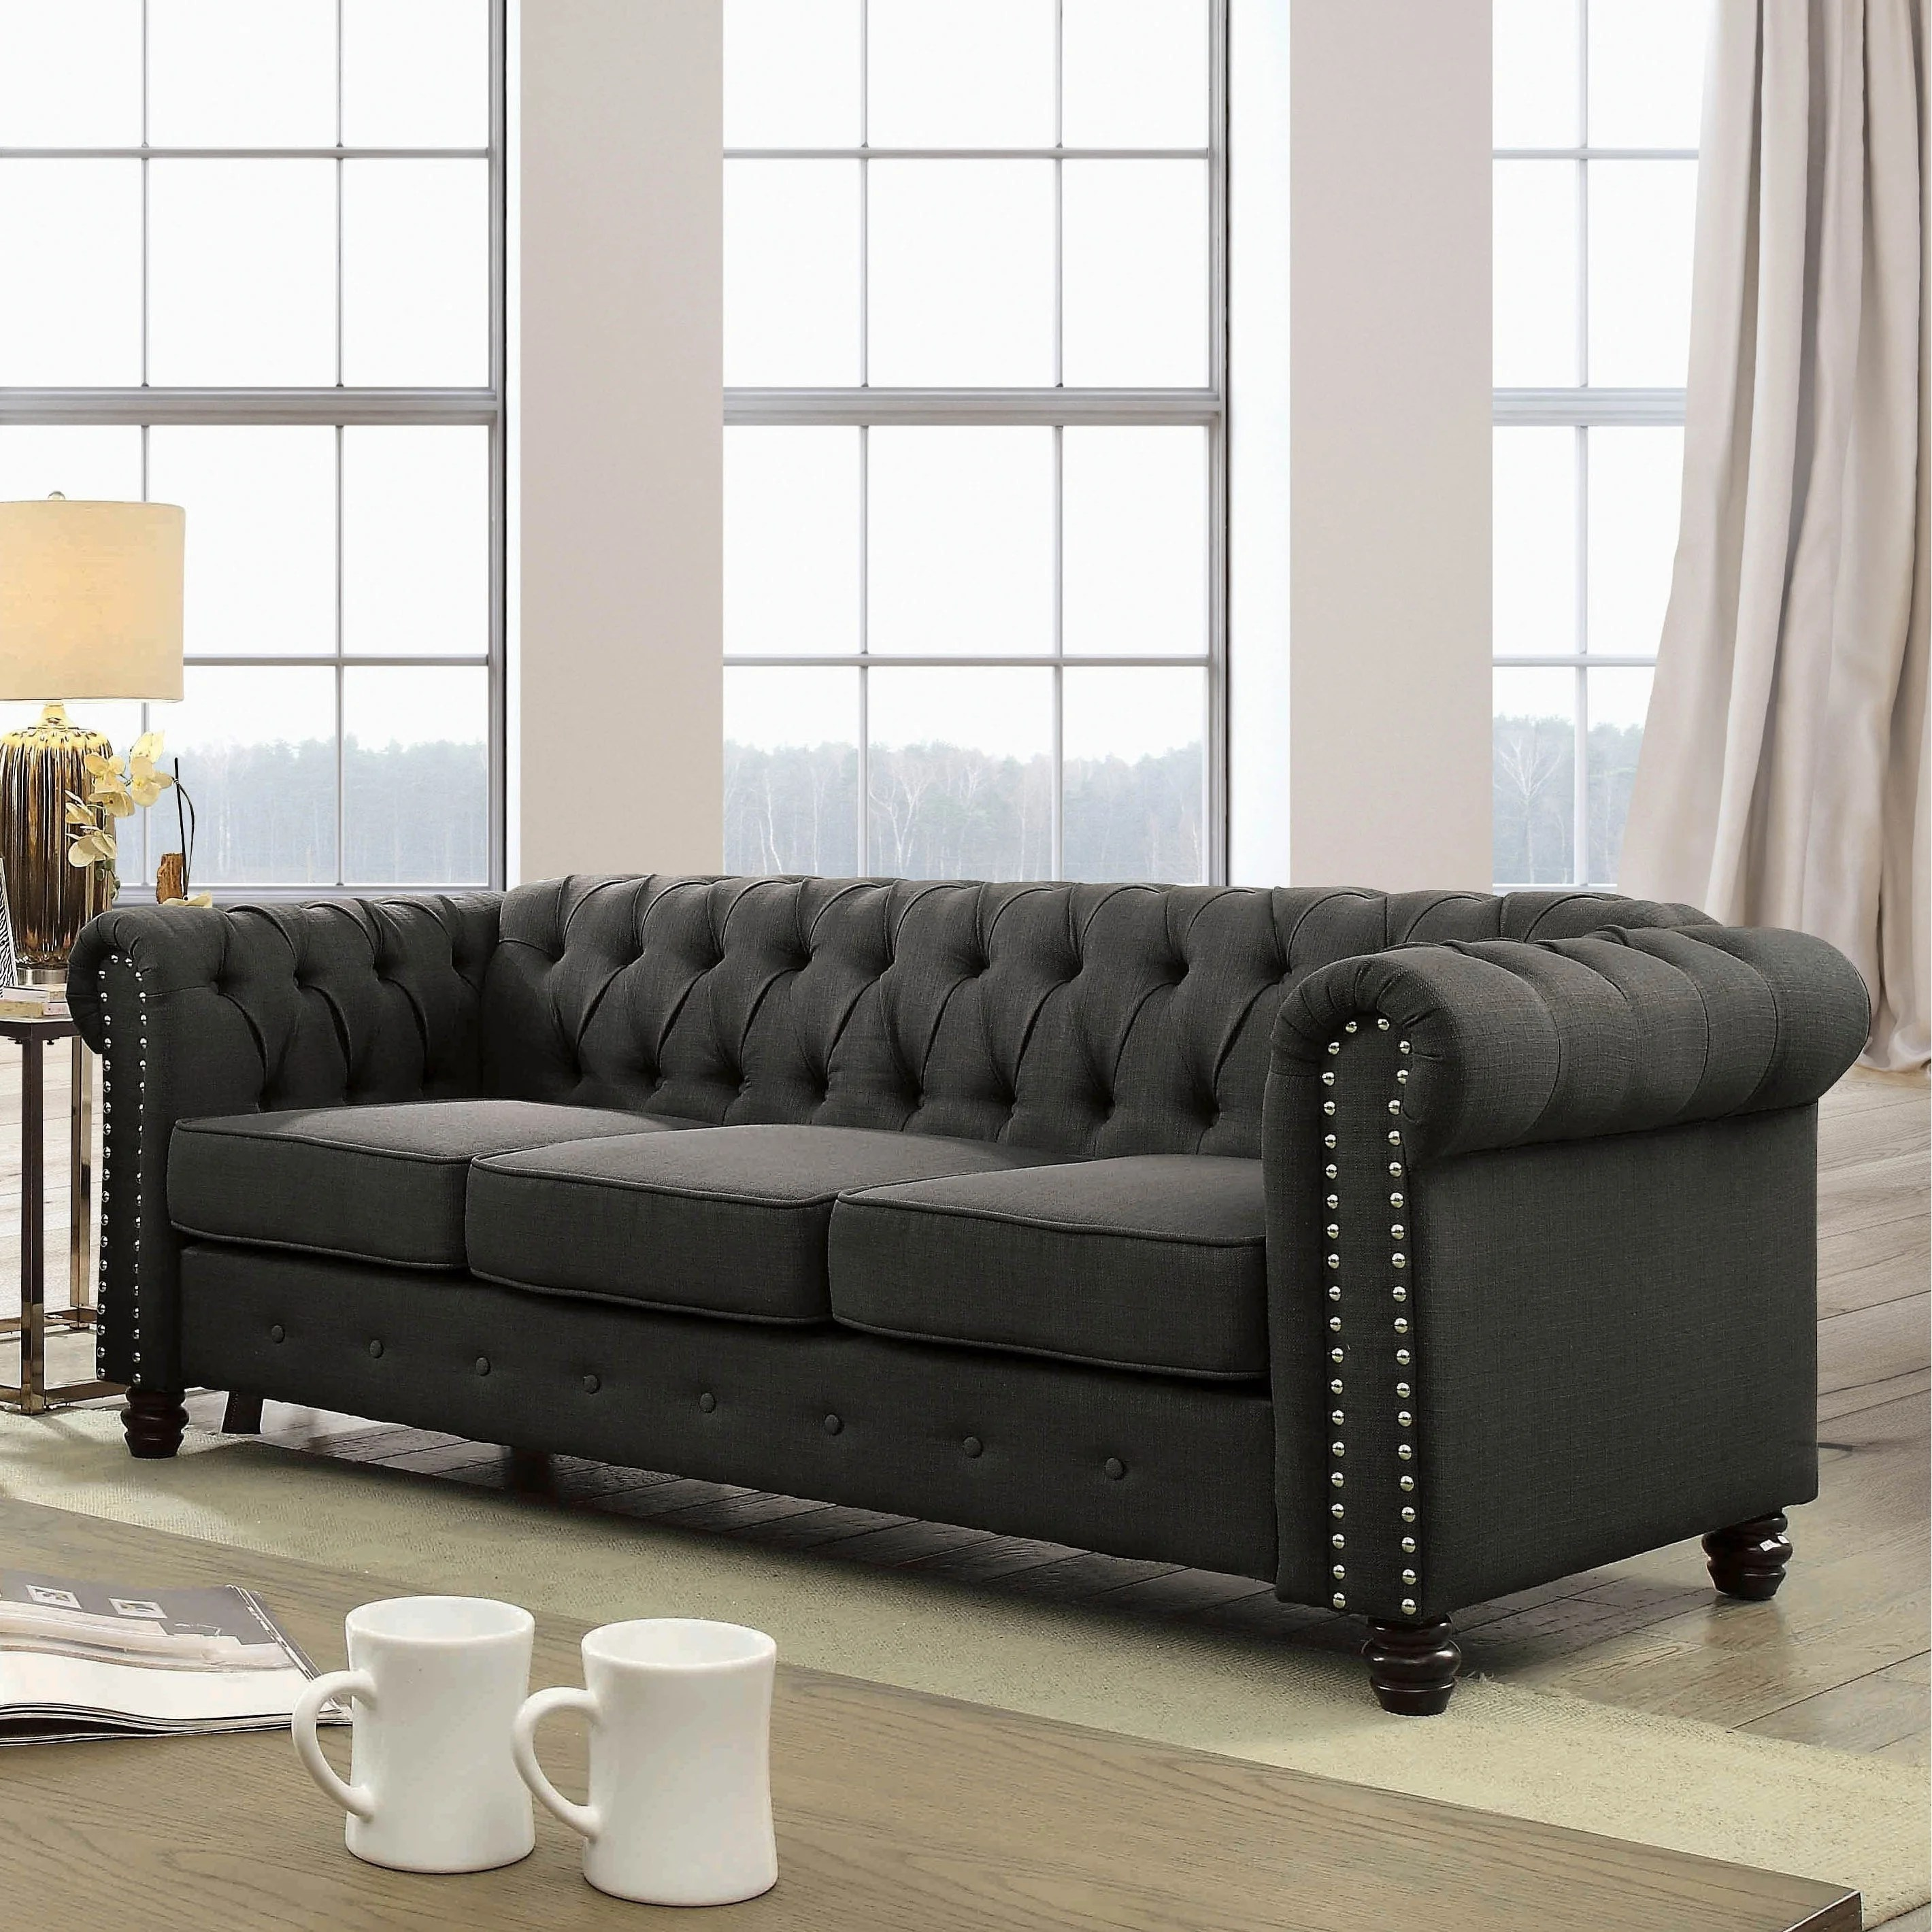 Chesterfield Sofa Martine Traditional Tufted Chesterfield Sofa By Foa